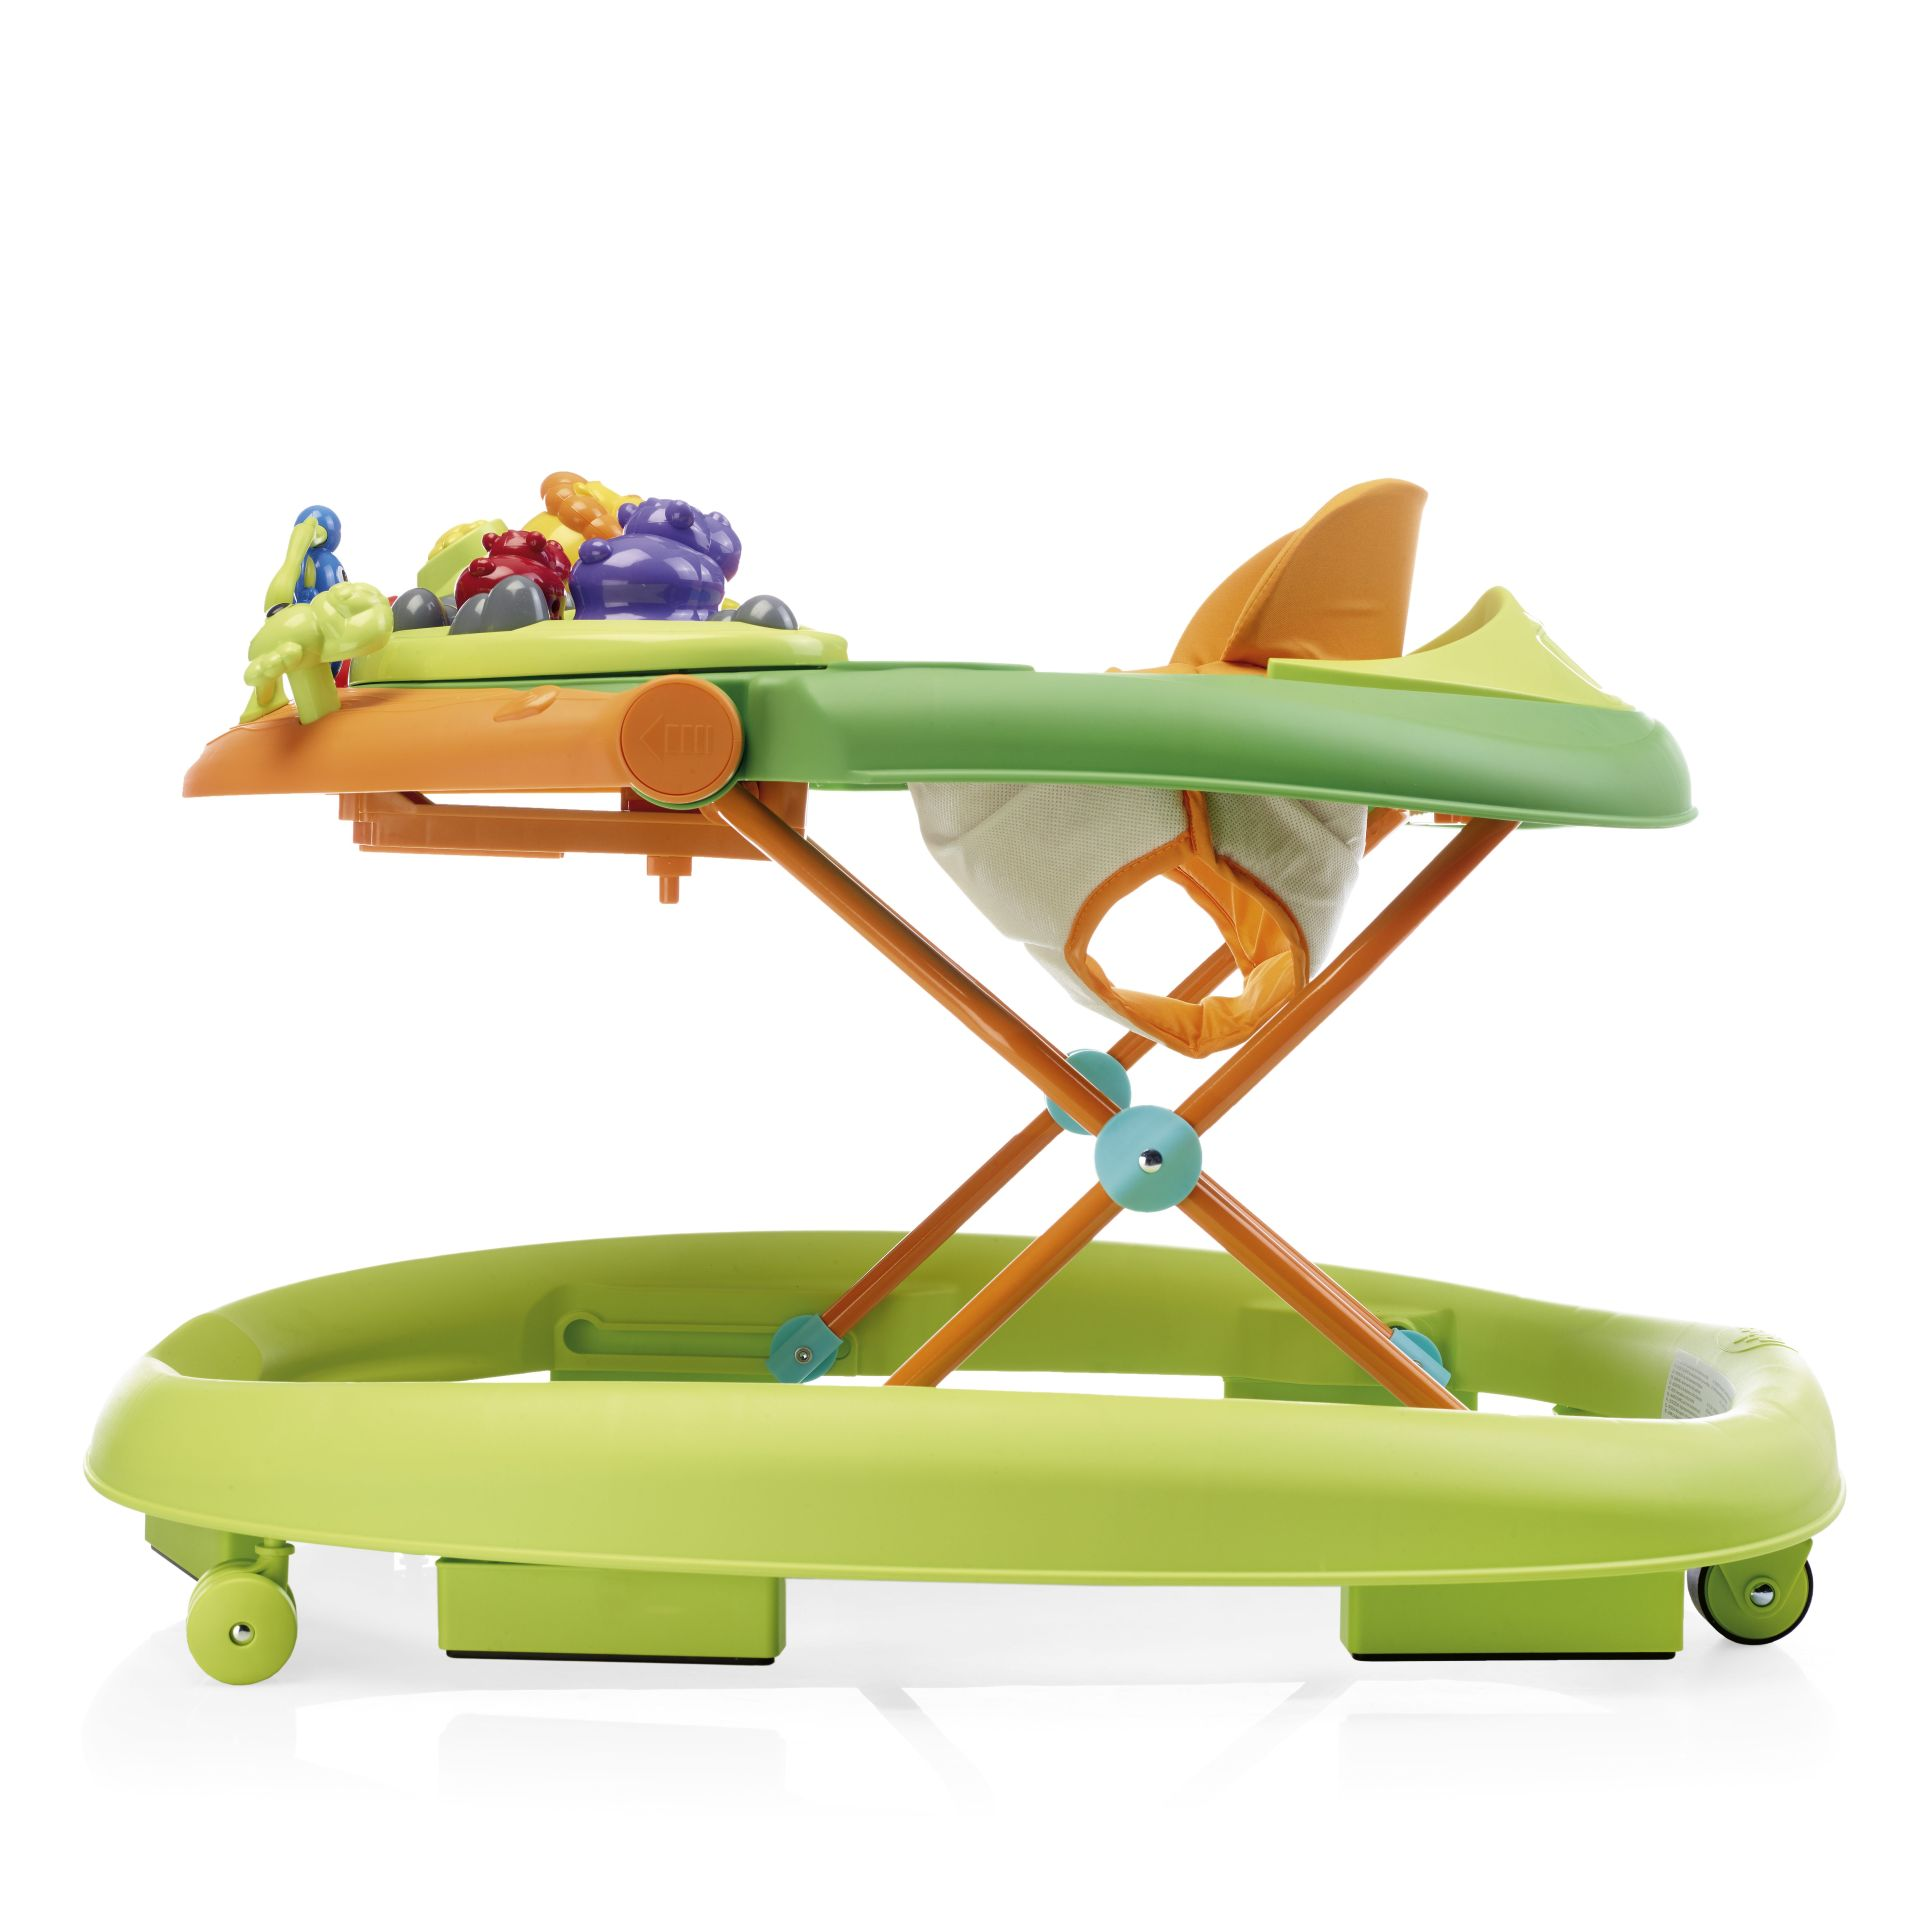 6d7baac959a9 Chicco Baby Walker Walky Talky 2018 Green Wave - Buy at kidsroom ...